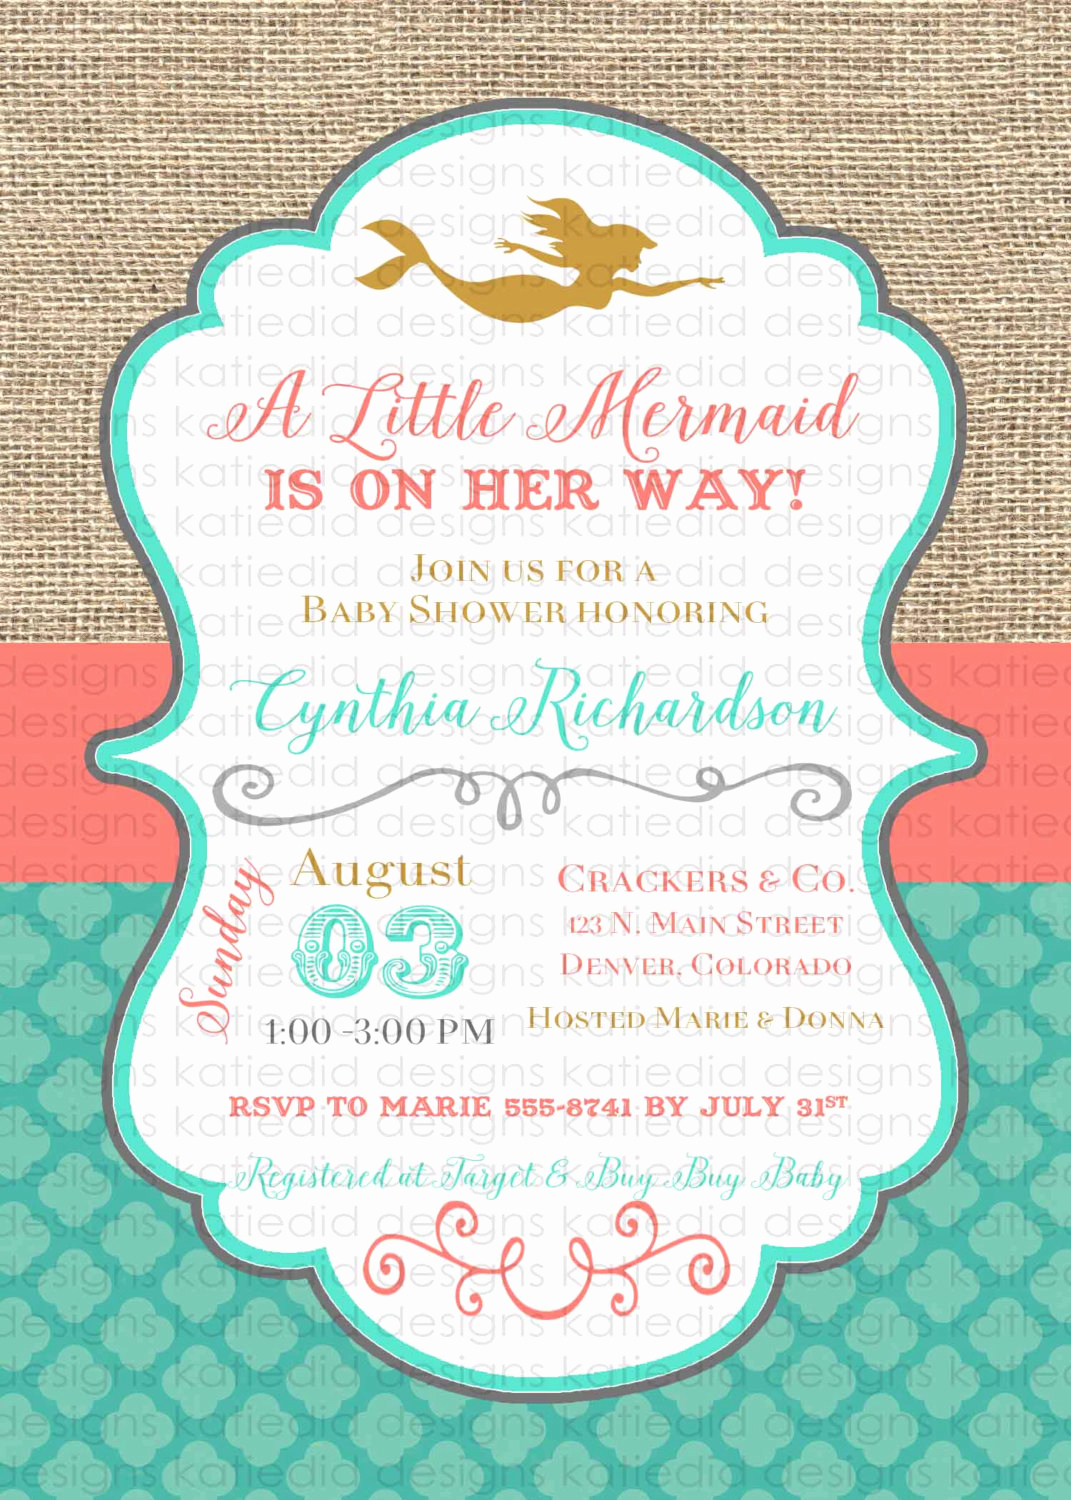 Mermaid Baby Shower Invitations Fresh Mermaid Baby Shower Invitation Bridal Shower 1365 Wedding Hen